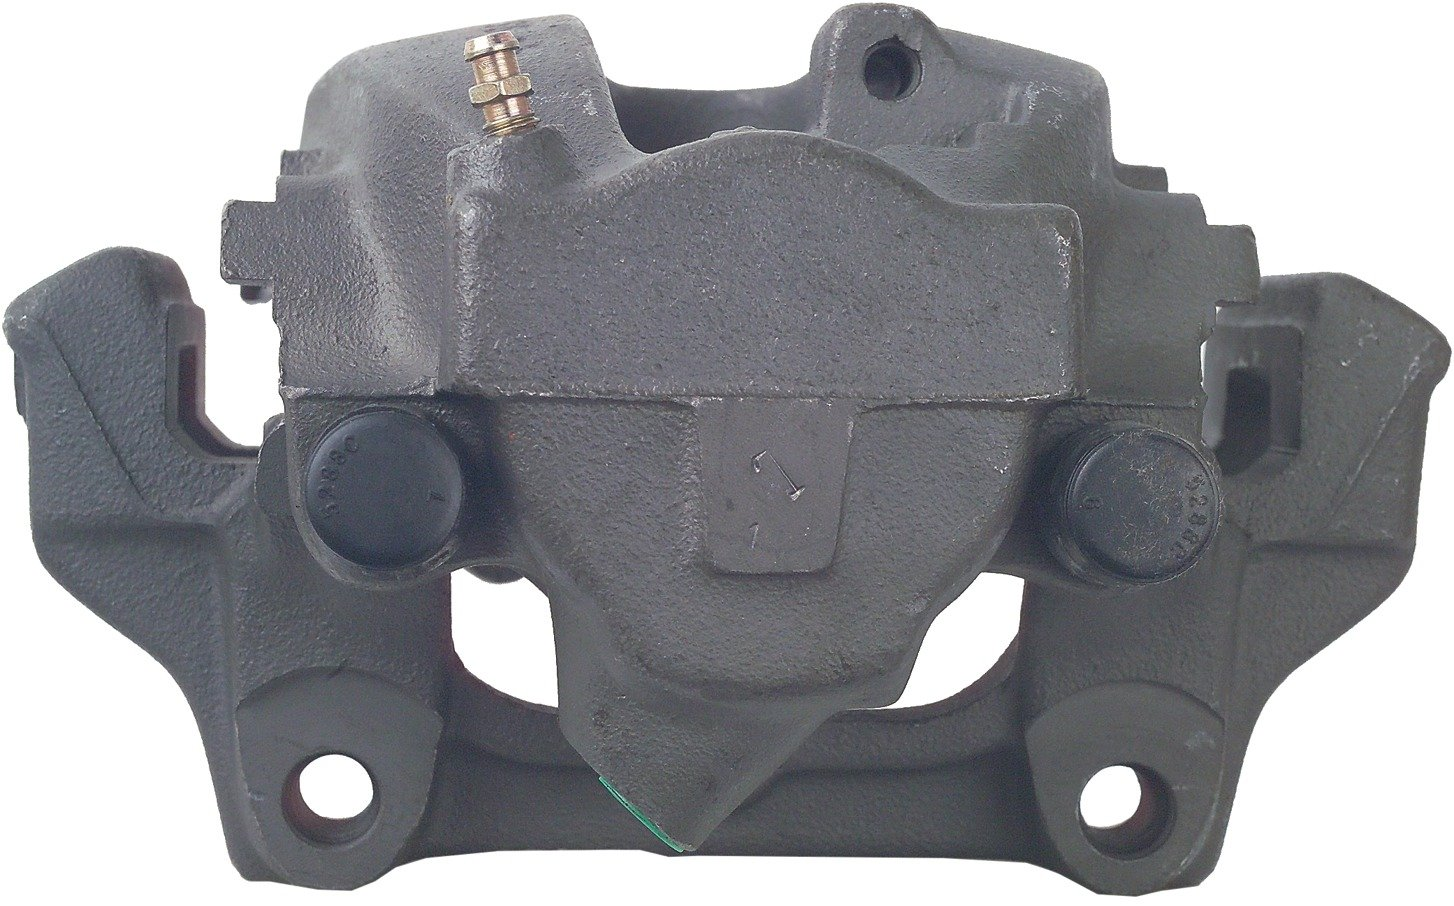 Cardone 19-B1820 Remanufactured Import Friction Ready (Unloaded) Brake Caliper by A1 Cardone (Image #1)